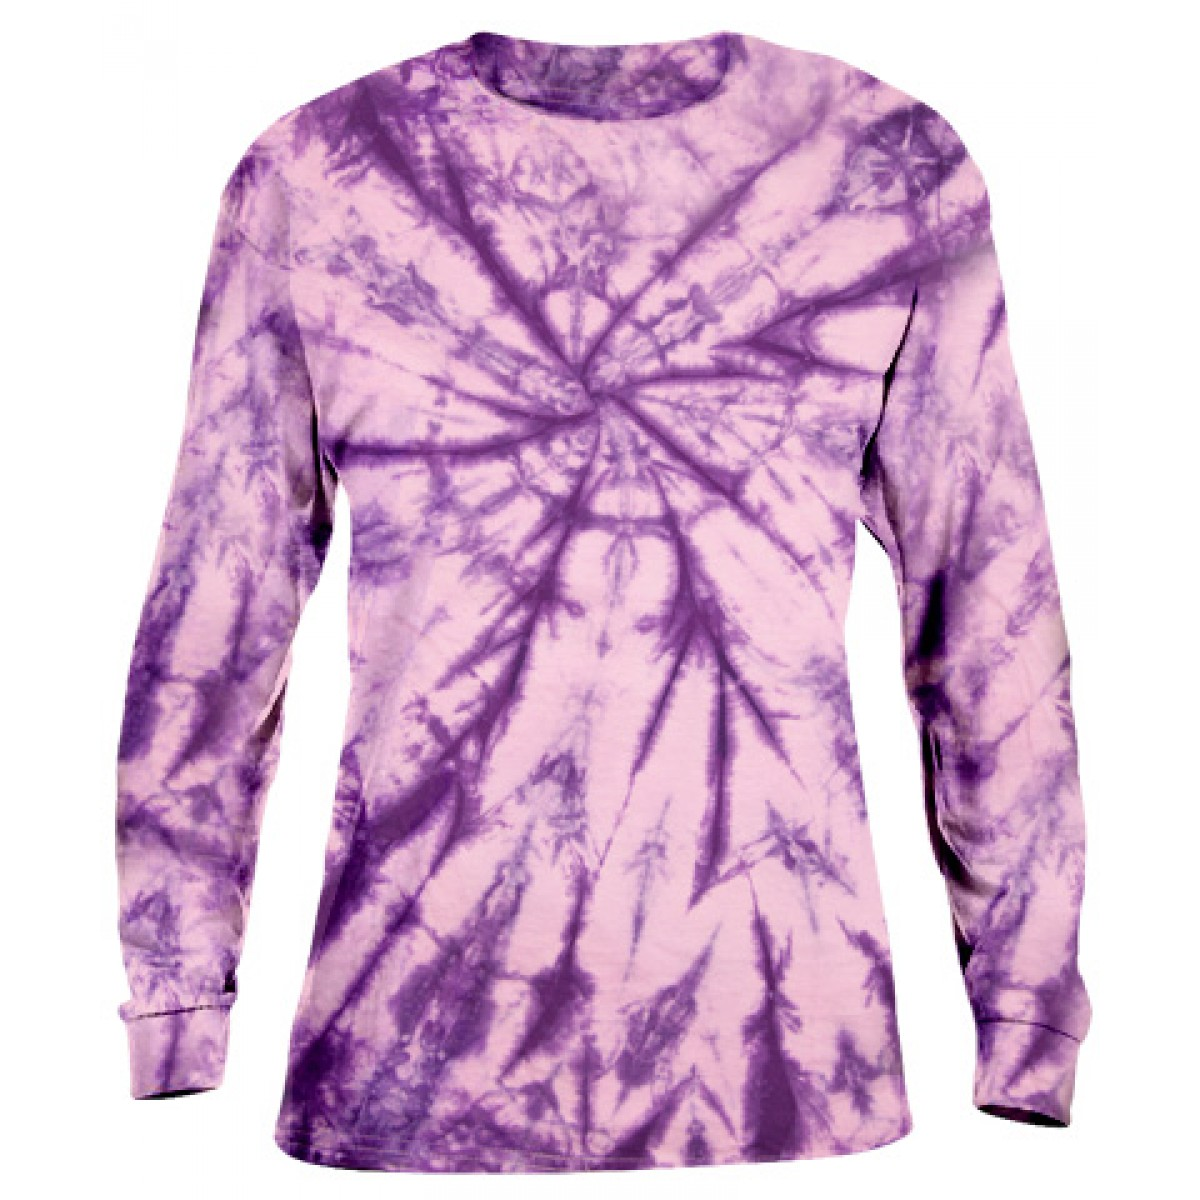 Tie-Dye Long Sleeve Shirt -Purple-YL